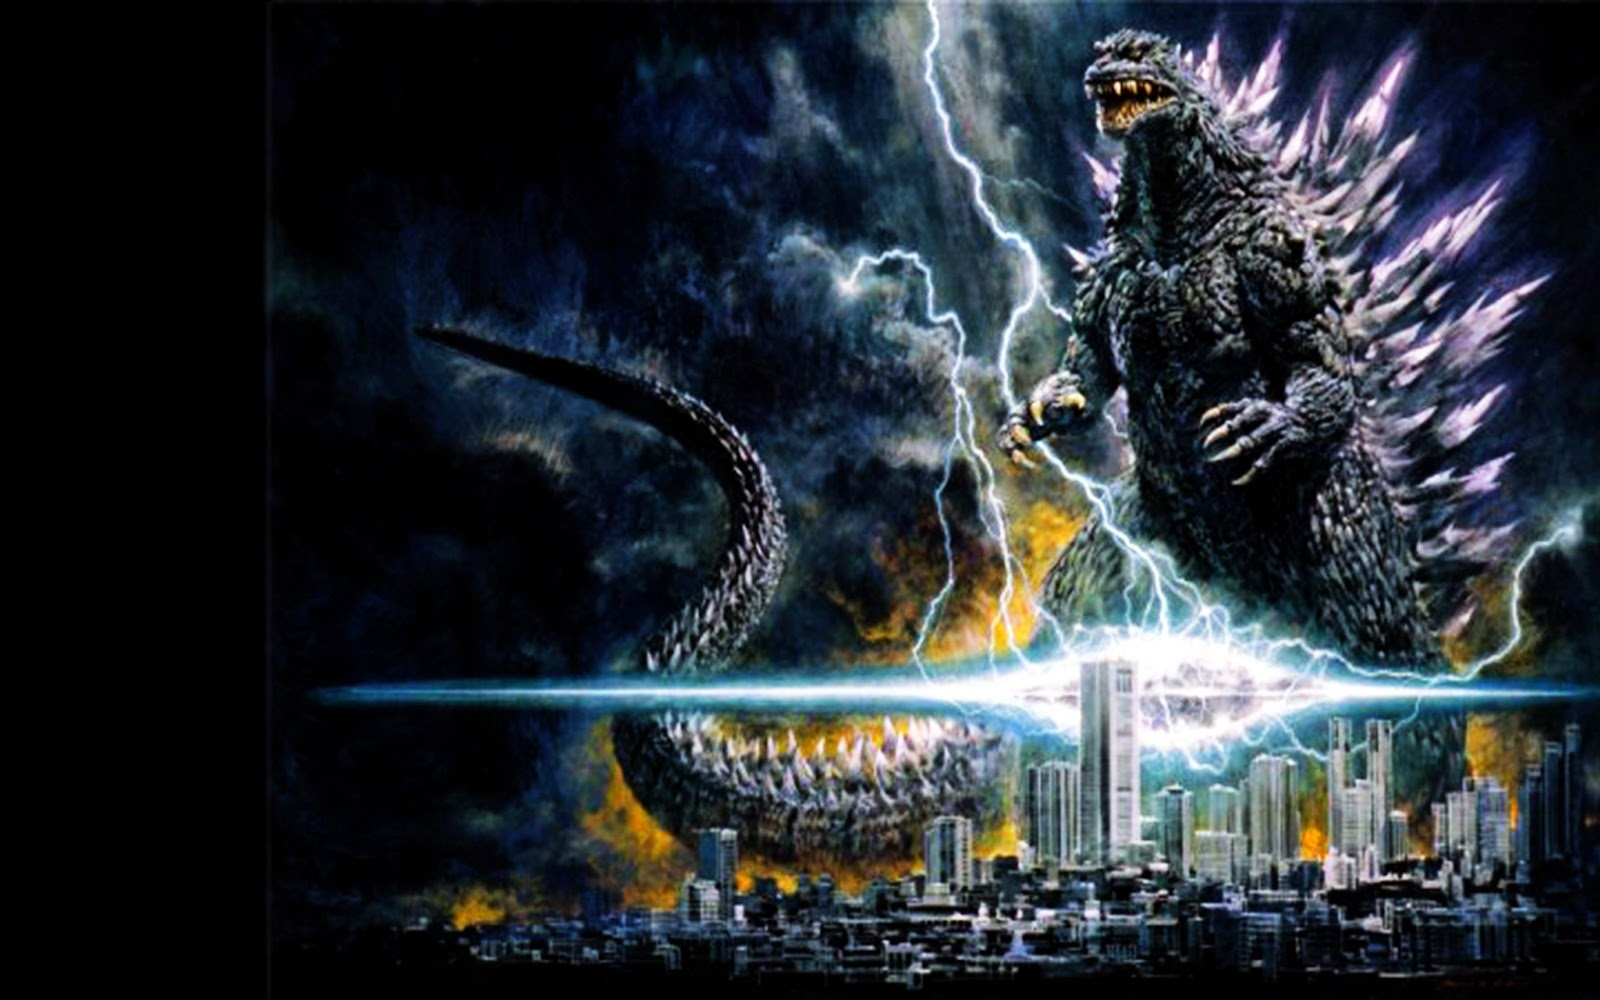 The Best HD Godzilla 2014 Wallpaper Touch iPhone 1600x1000